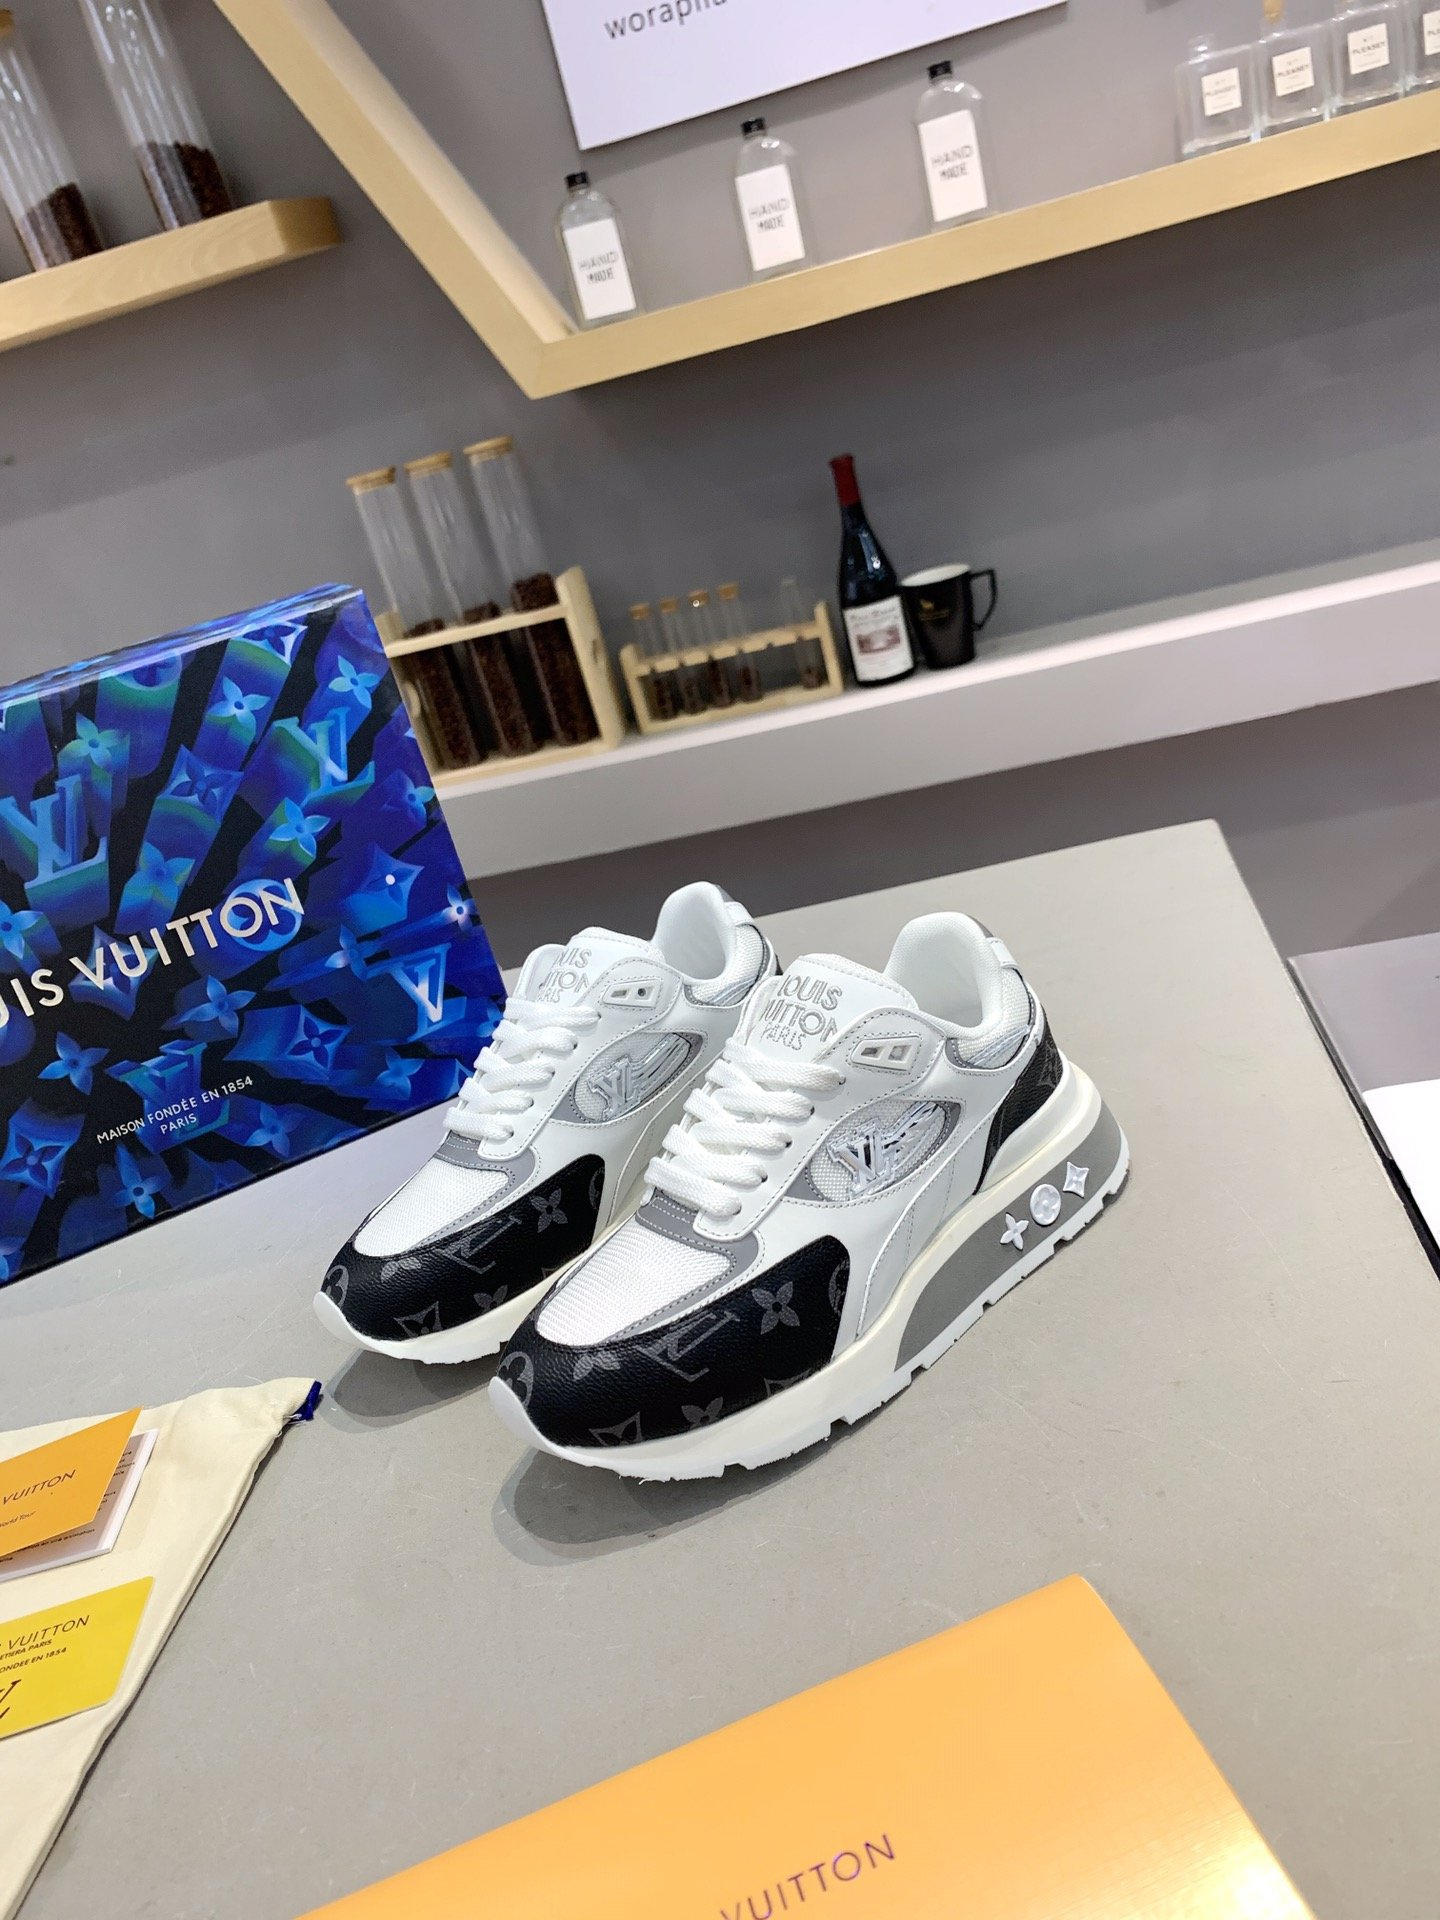 Image of Louis Vuitto Men's 2021 New Fashion Casual Shoes Sneaker Sport Running Shoes0515xf